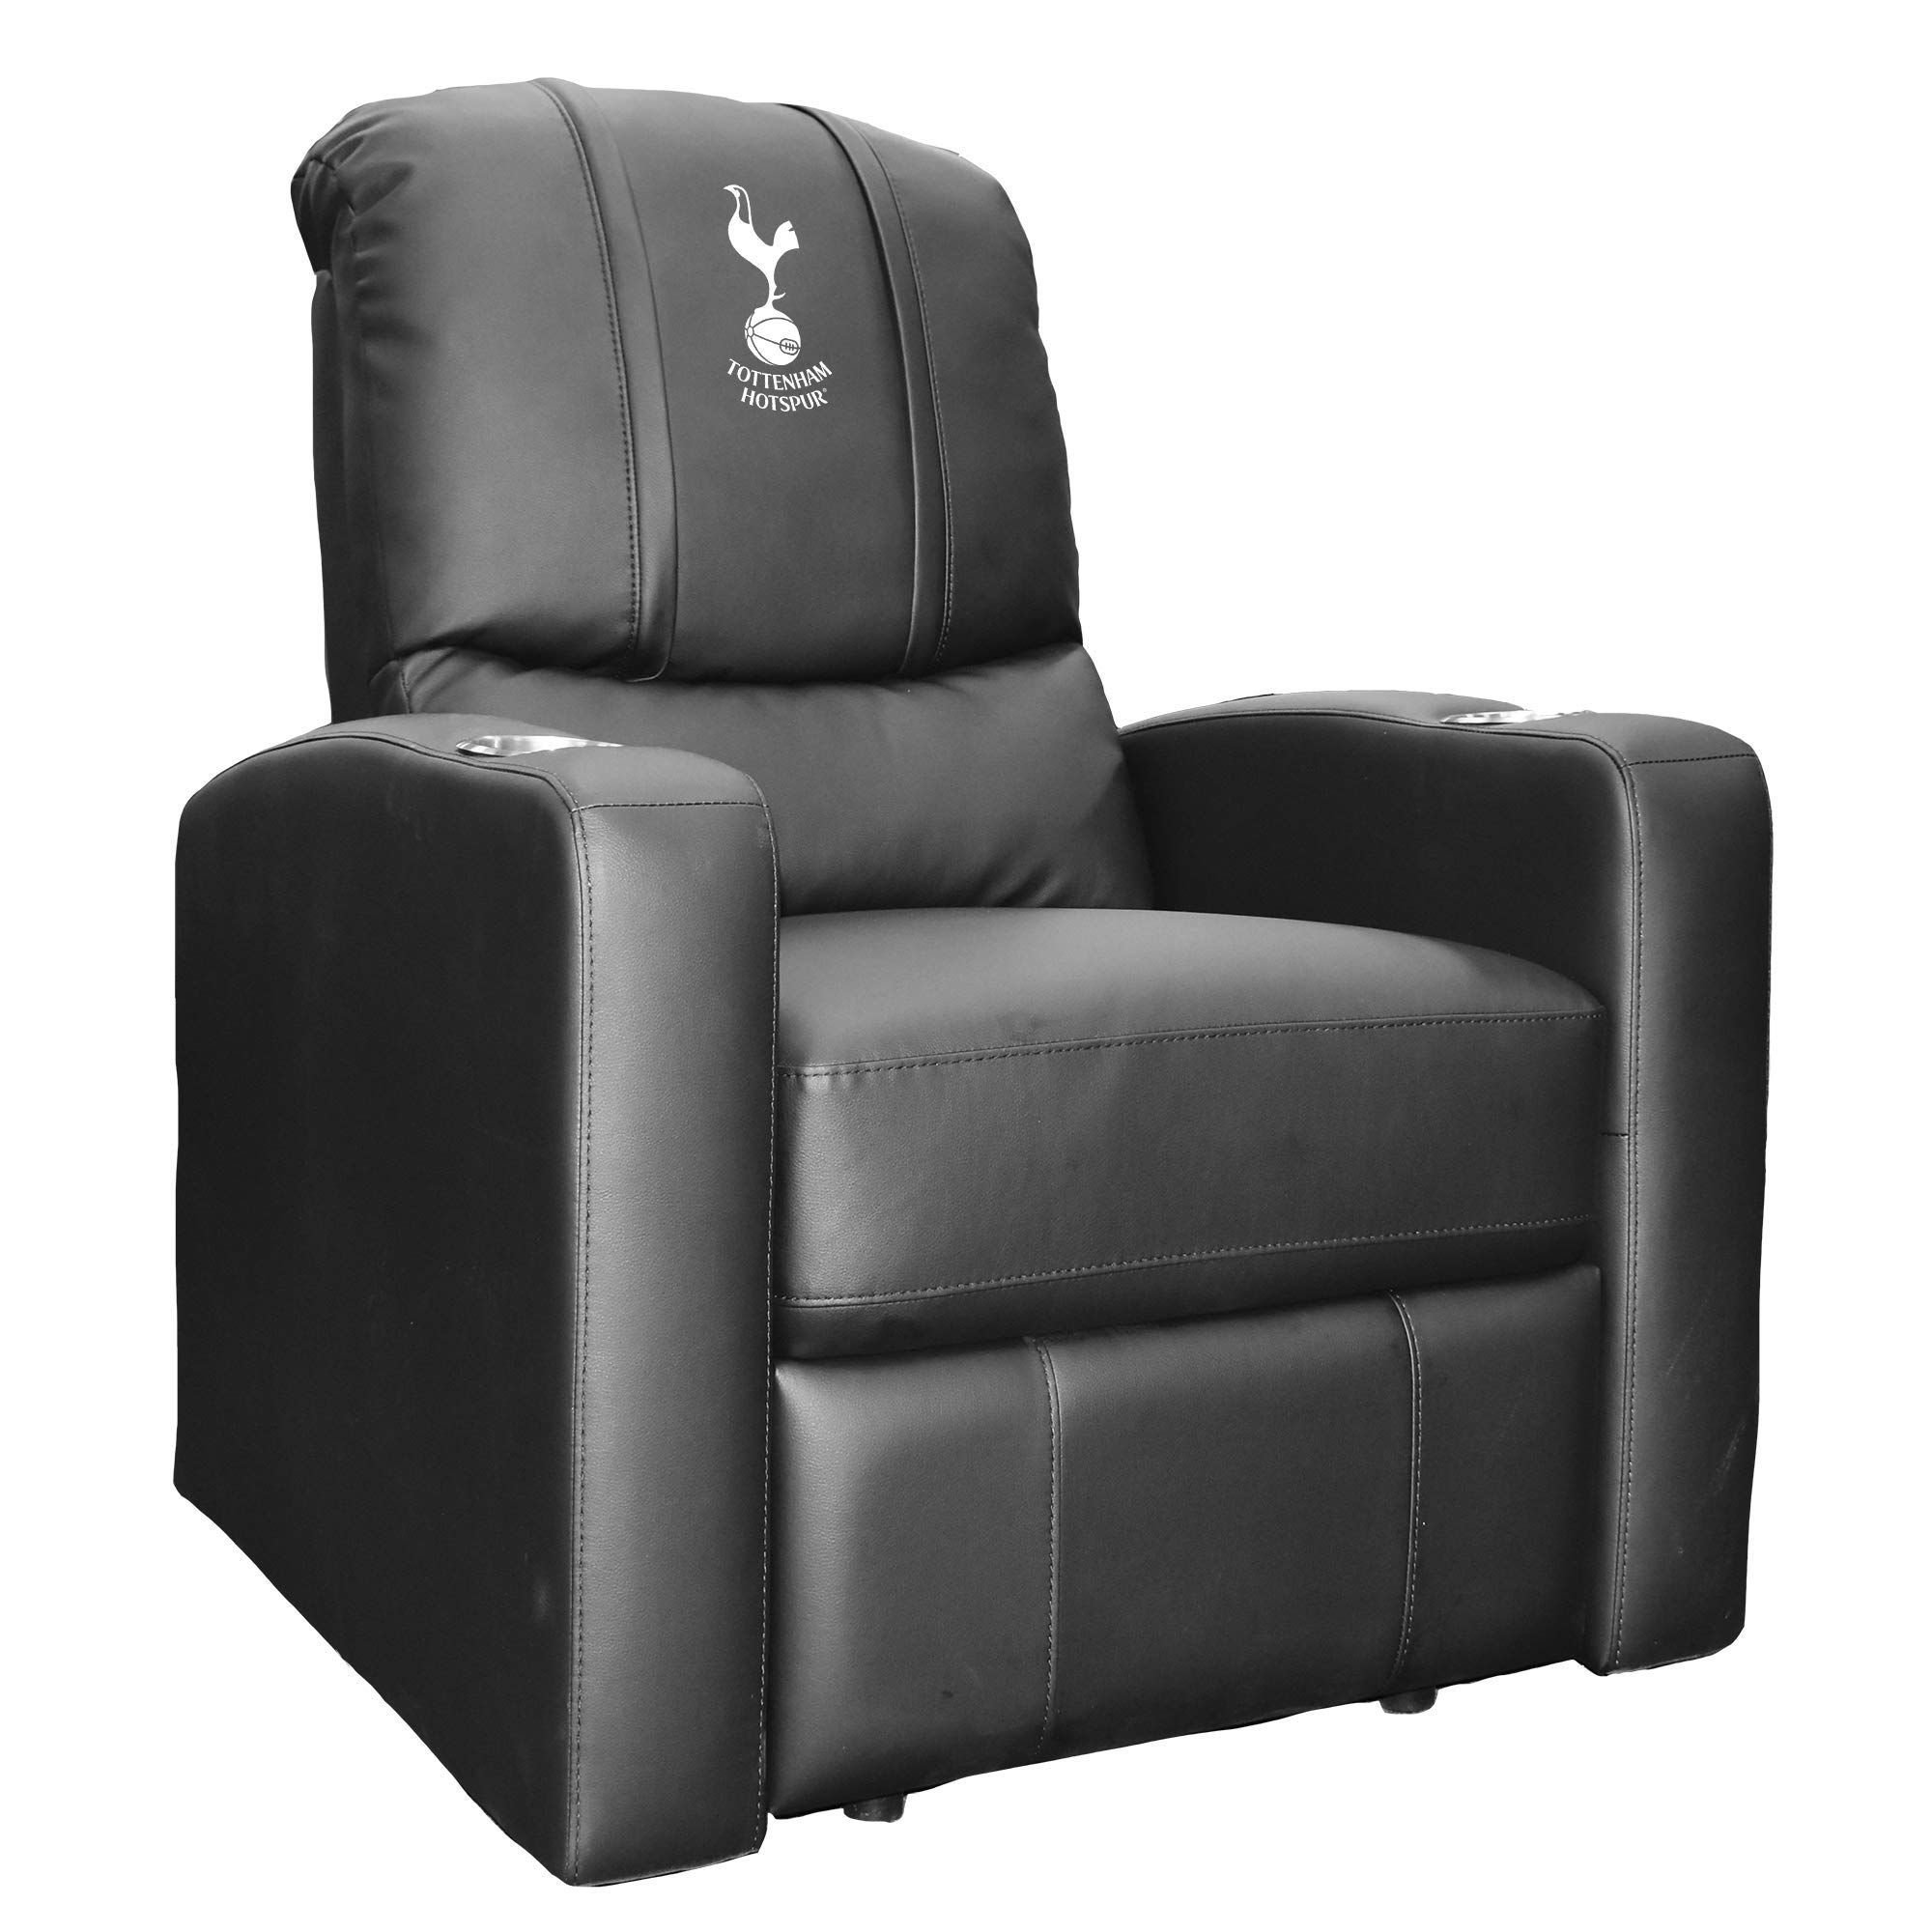 Tottenham Hotspur Primary Logo Stealth Recliner by Dreamseat